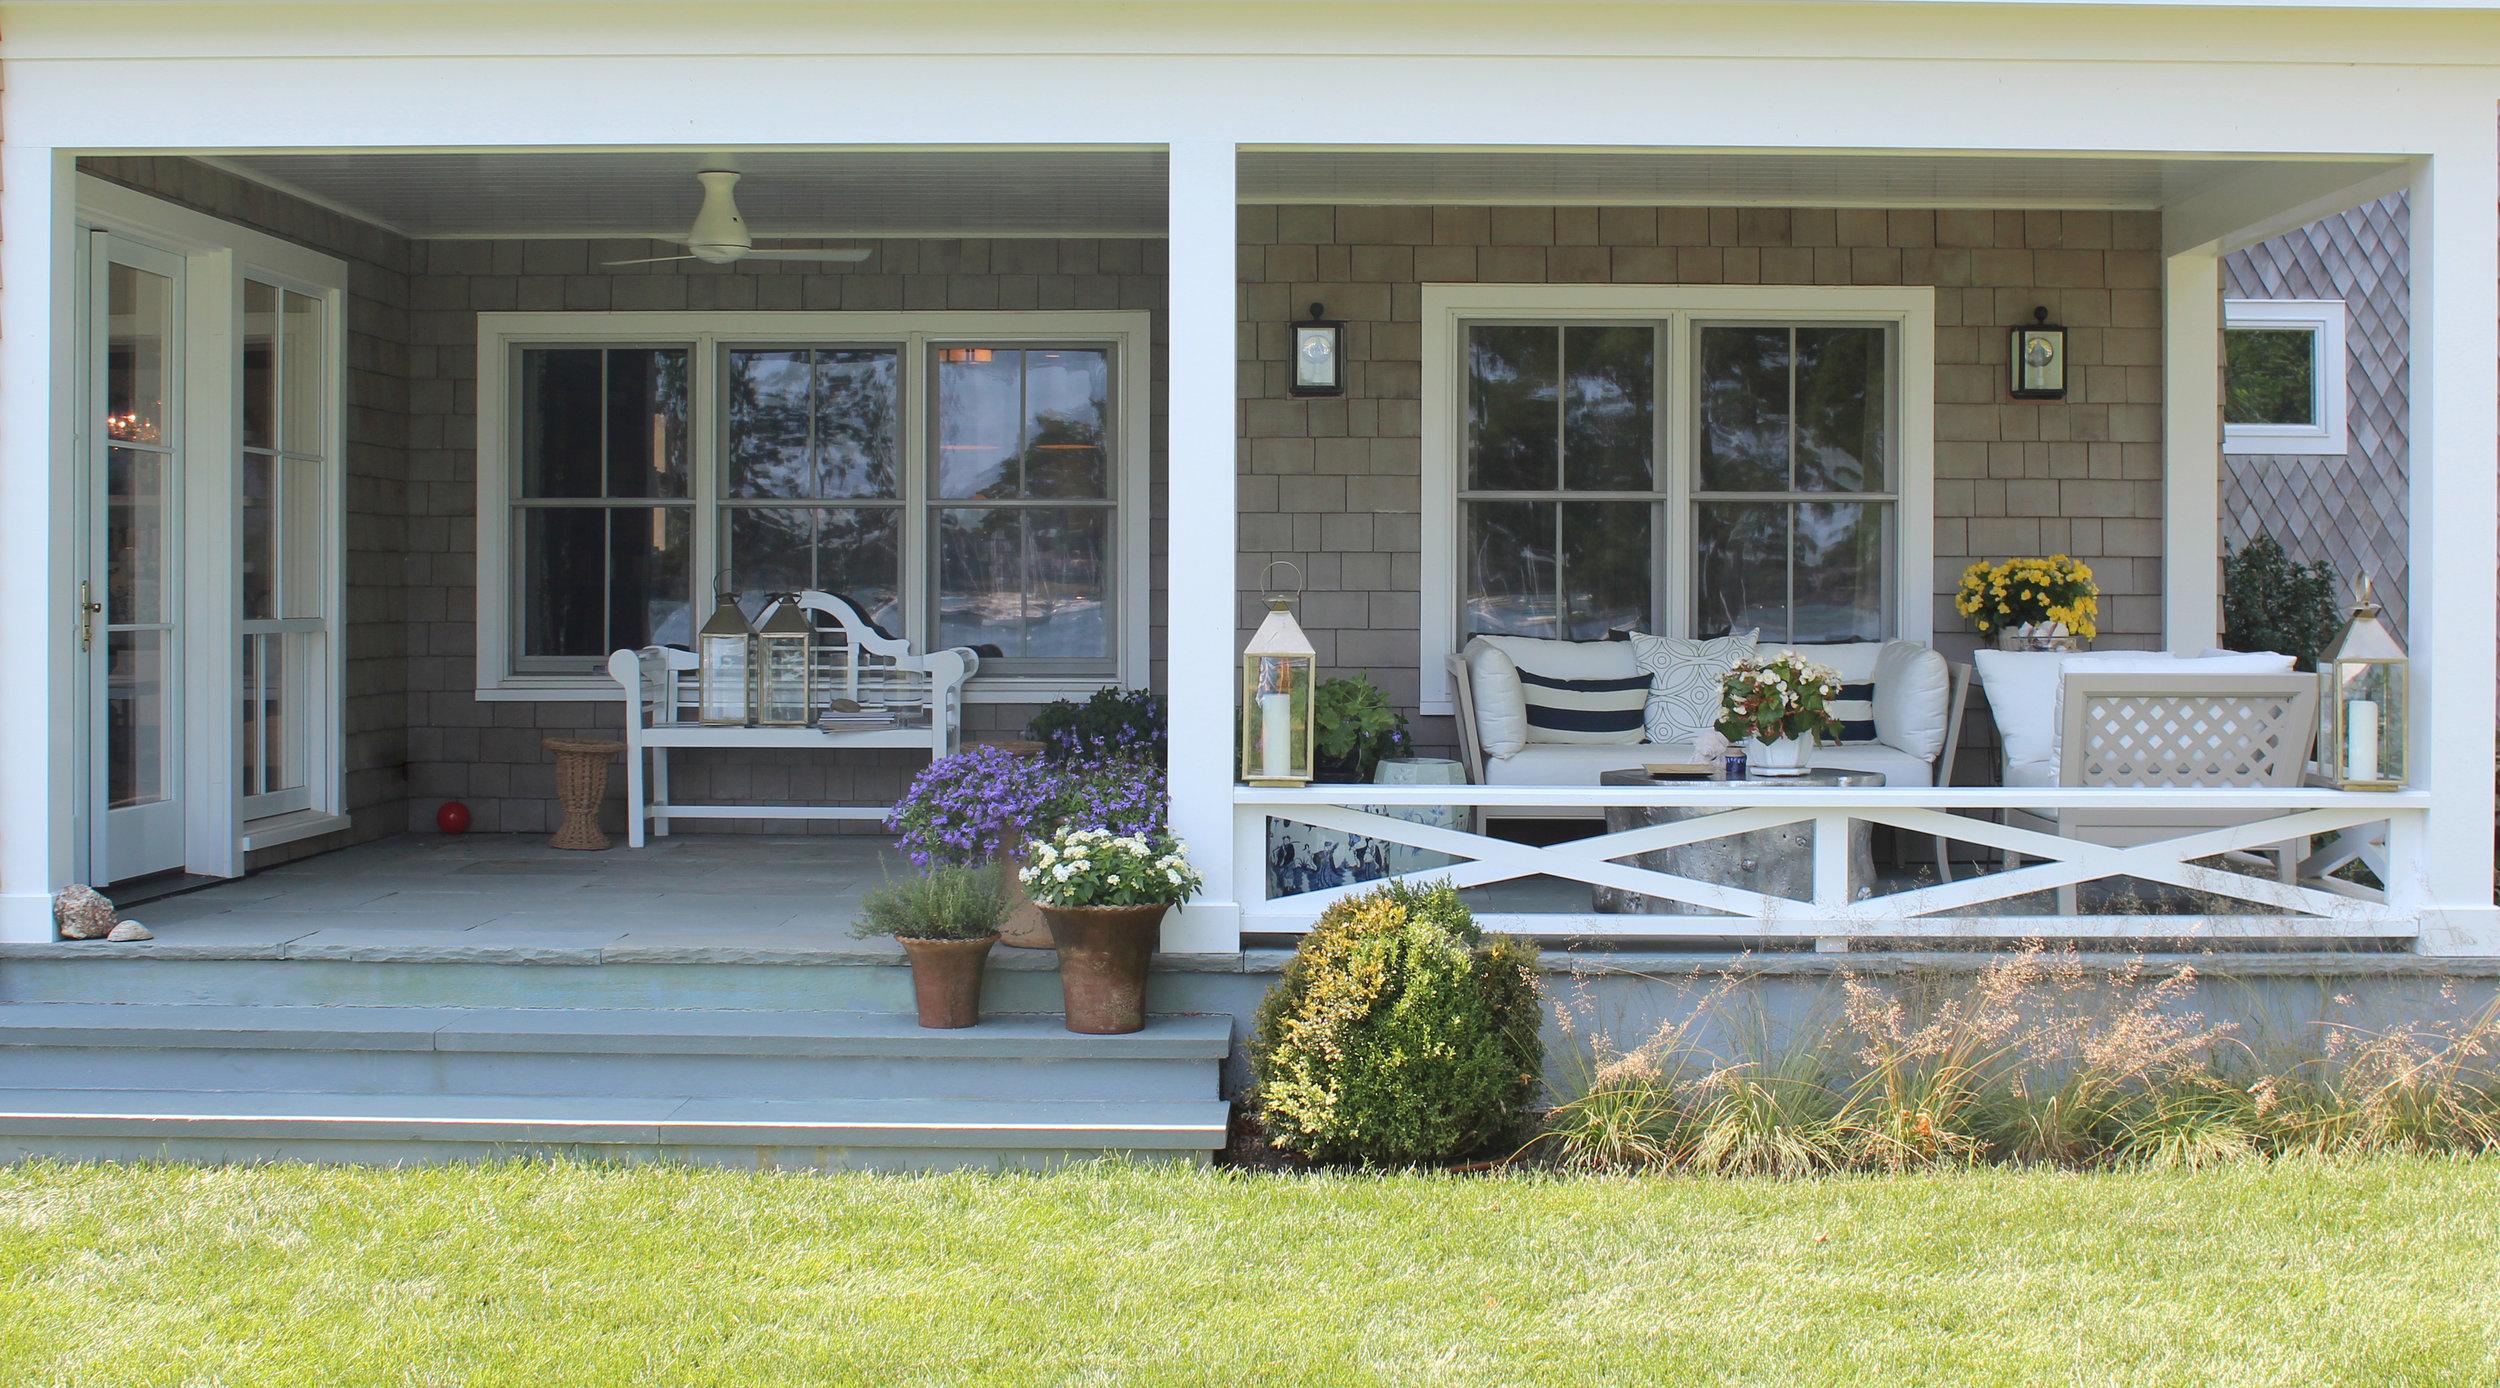 Shelter-Island-NY-Harbor-House-Porch-From-Grass-Studio-Geiger-Architecture-Princeton-New-York.jpg